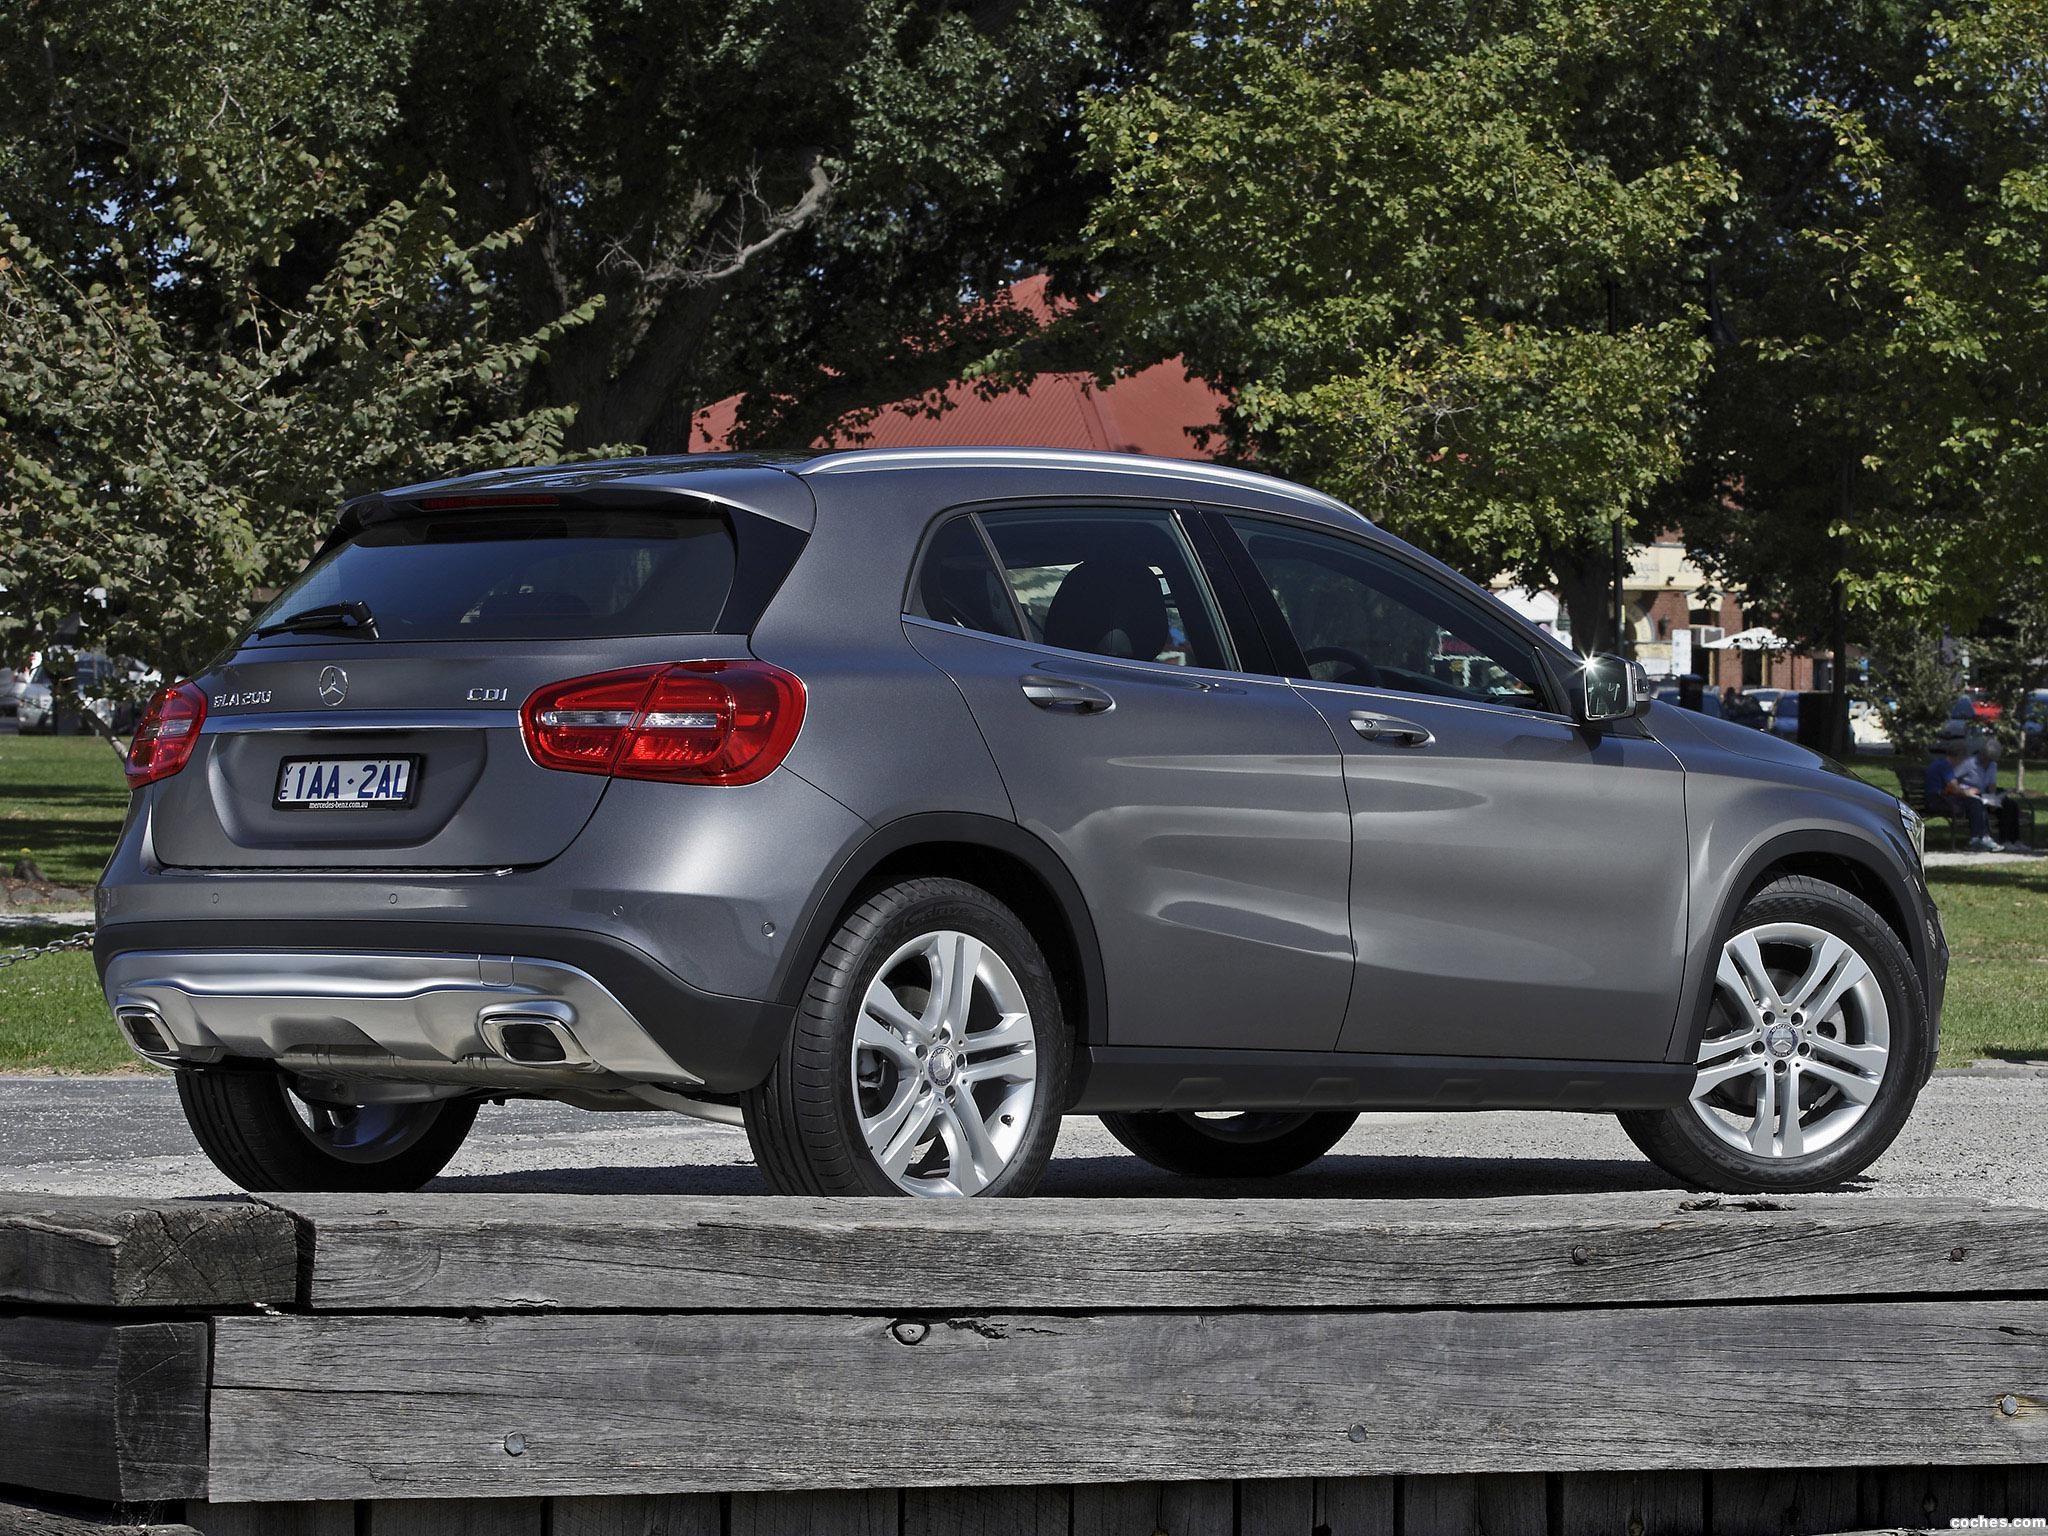 fotos de mercedes clase gla 200 cdi x156 australia 2014 foto 7. Black Bedroom Furniture Sets. Home Design Ideas